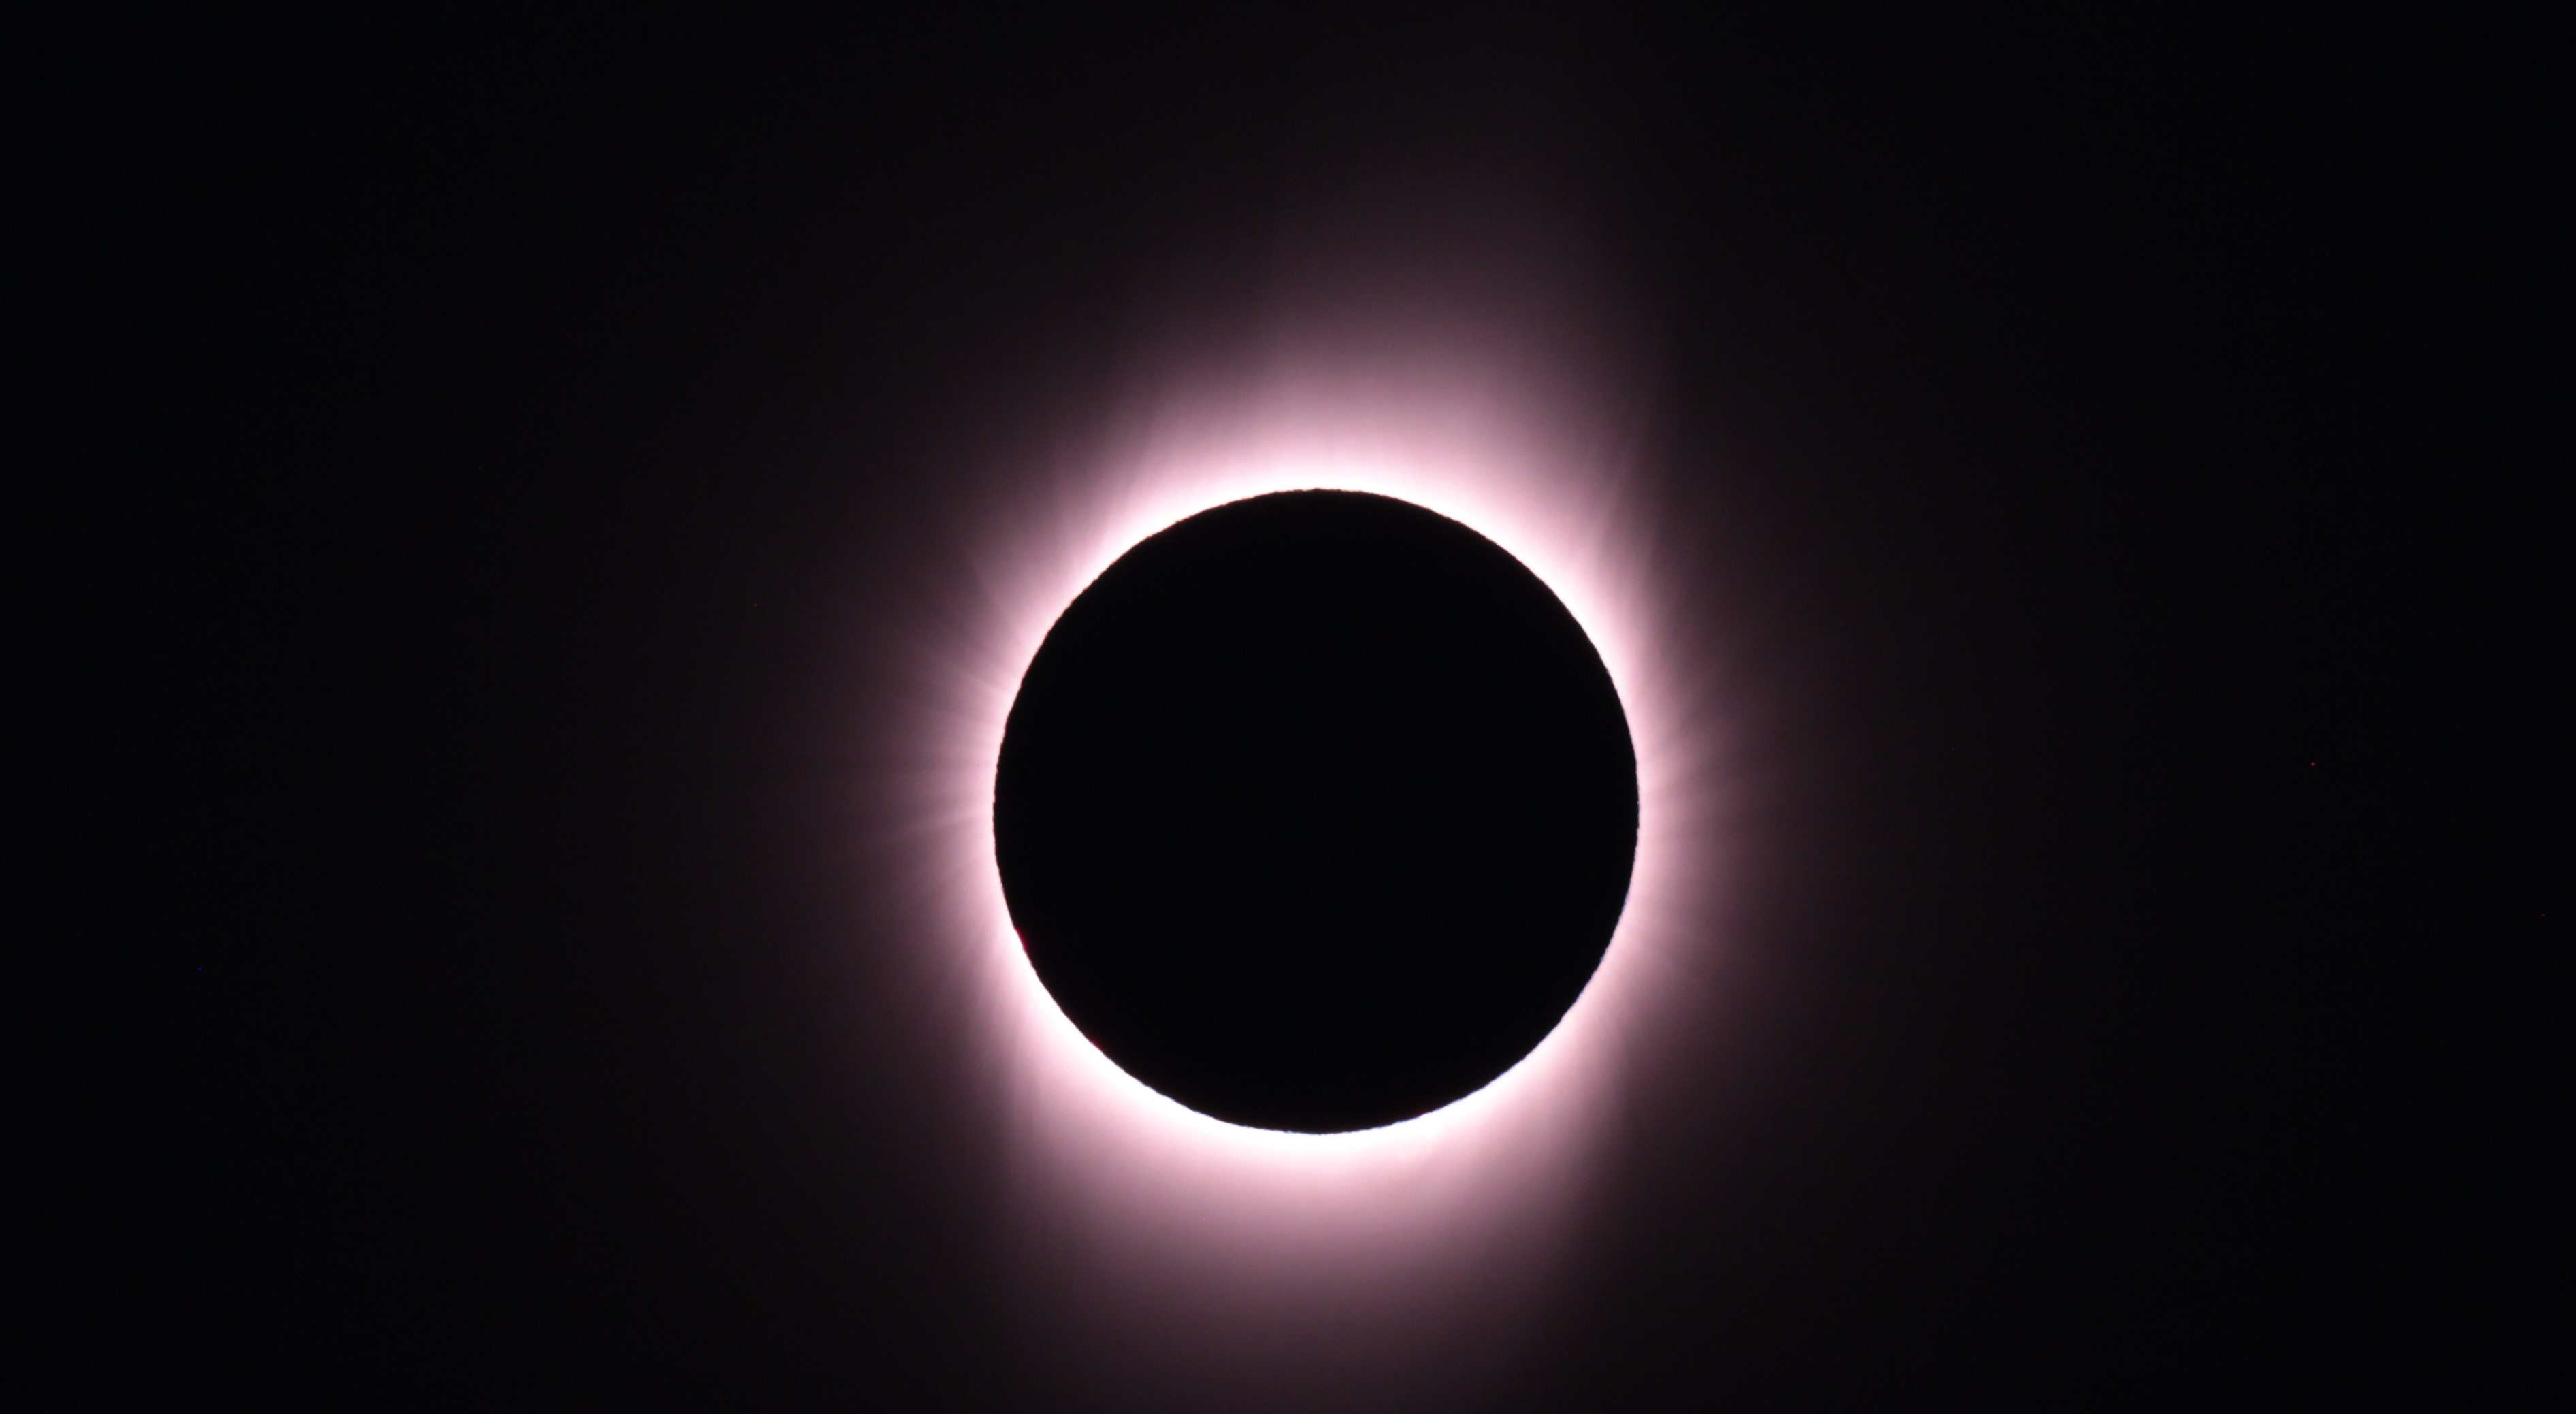 Eclipse du 2 juillet 2019 Chile